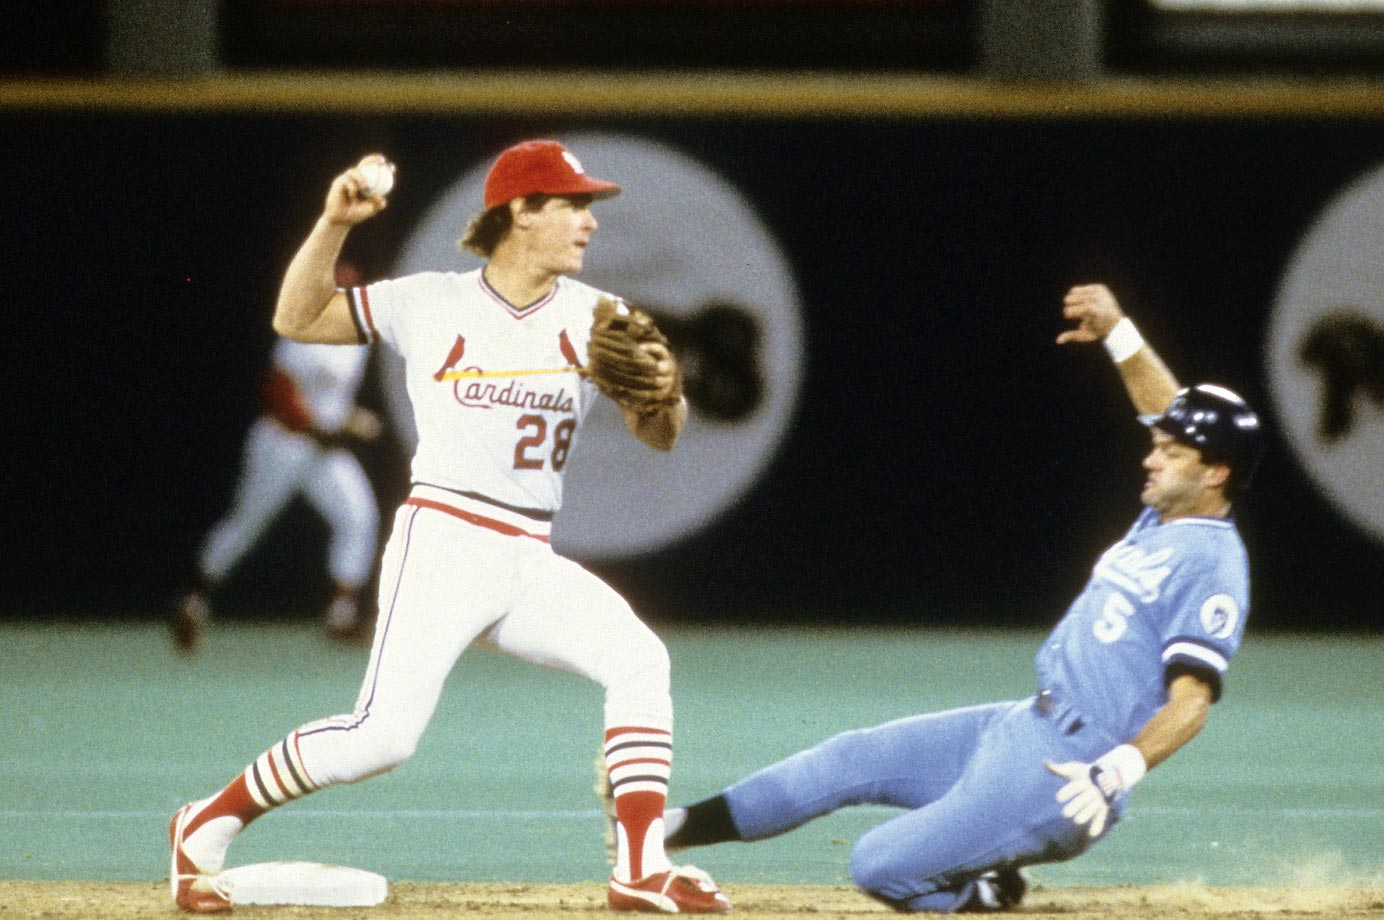 Cardinals infielder Tommy Herr throws to first base before George Brett slides into first.